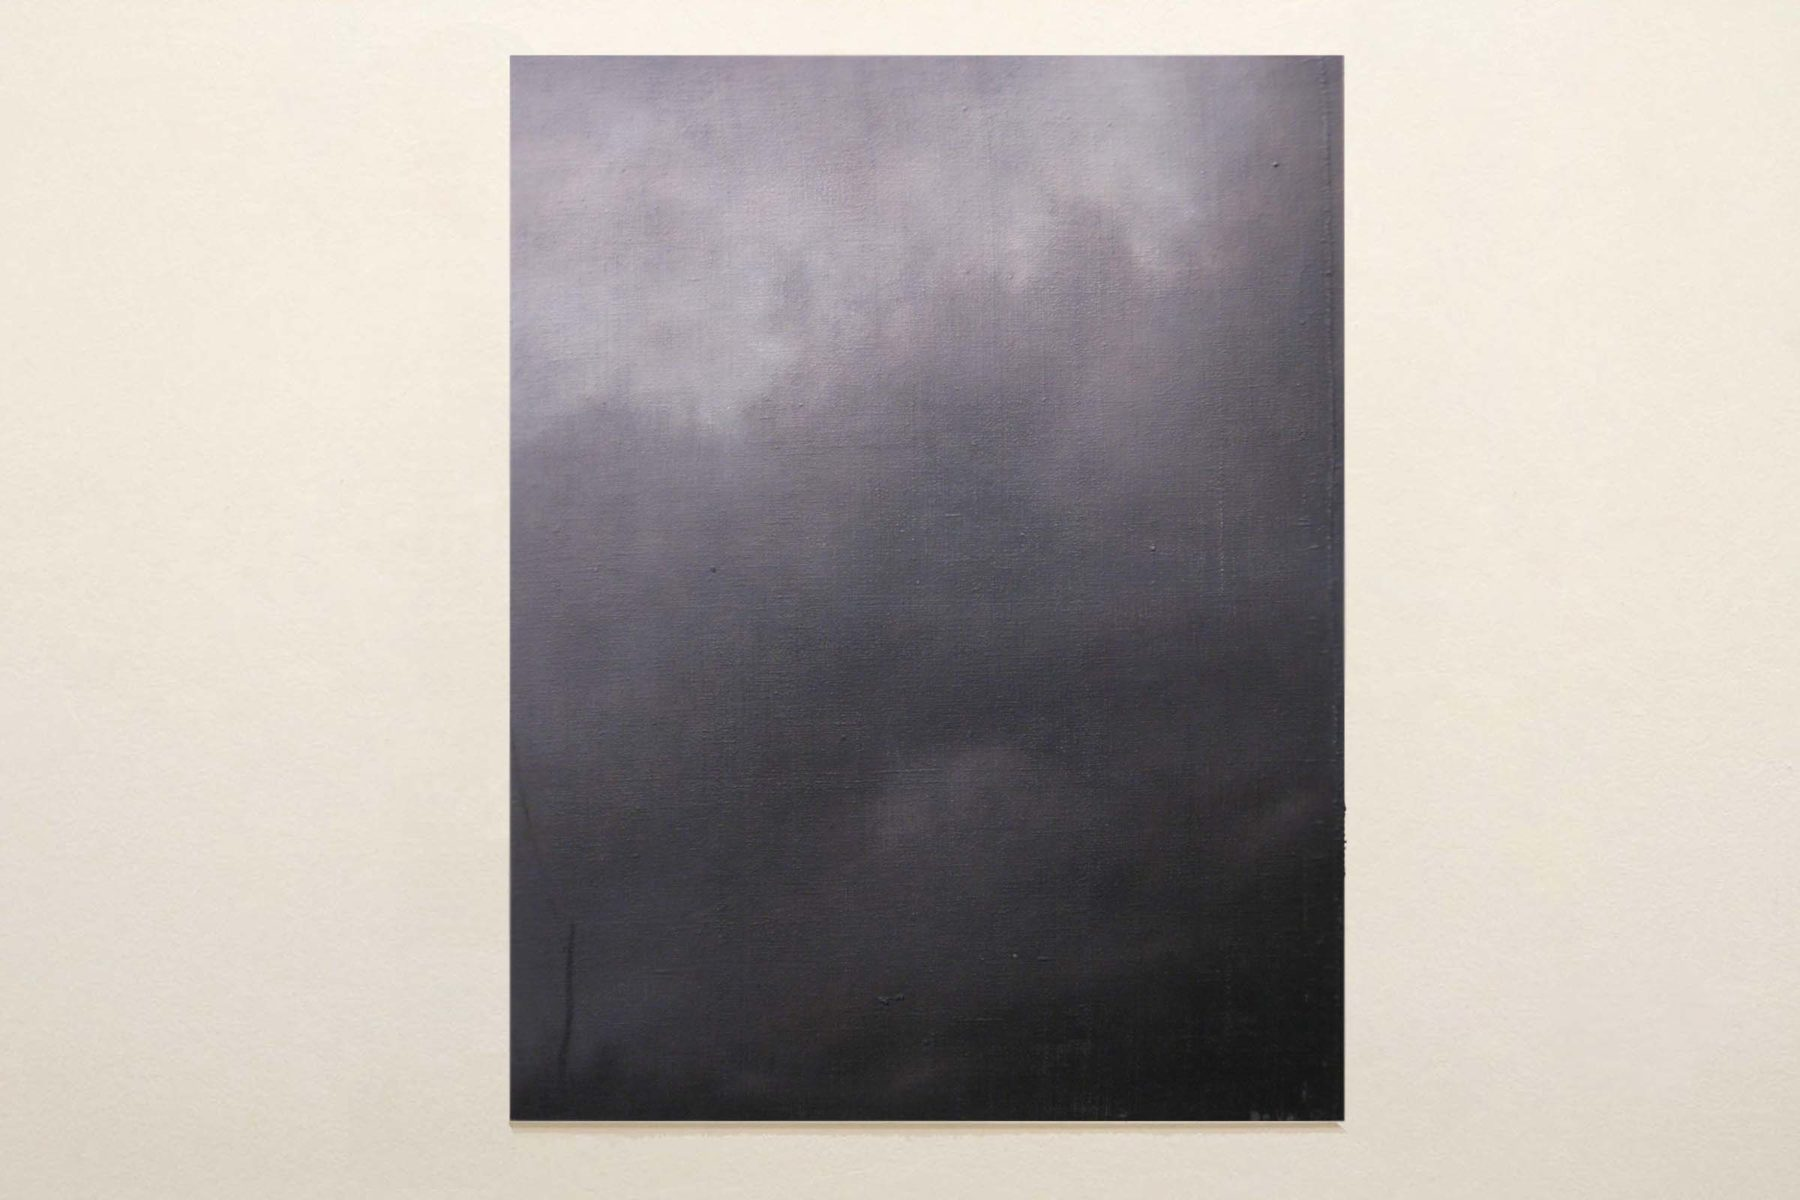 Gianni De Val, Rest and vertigo in the deluge light 1, 2012, oil on canvas, 70 x 50 cm